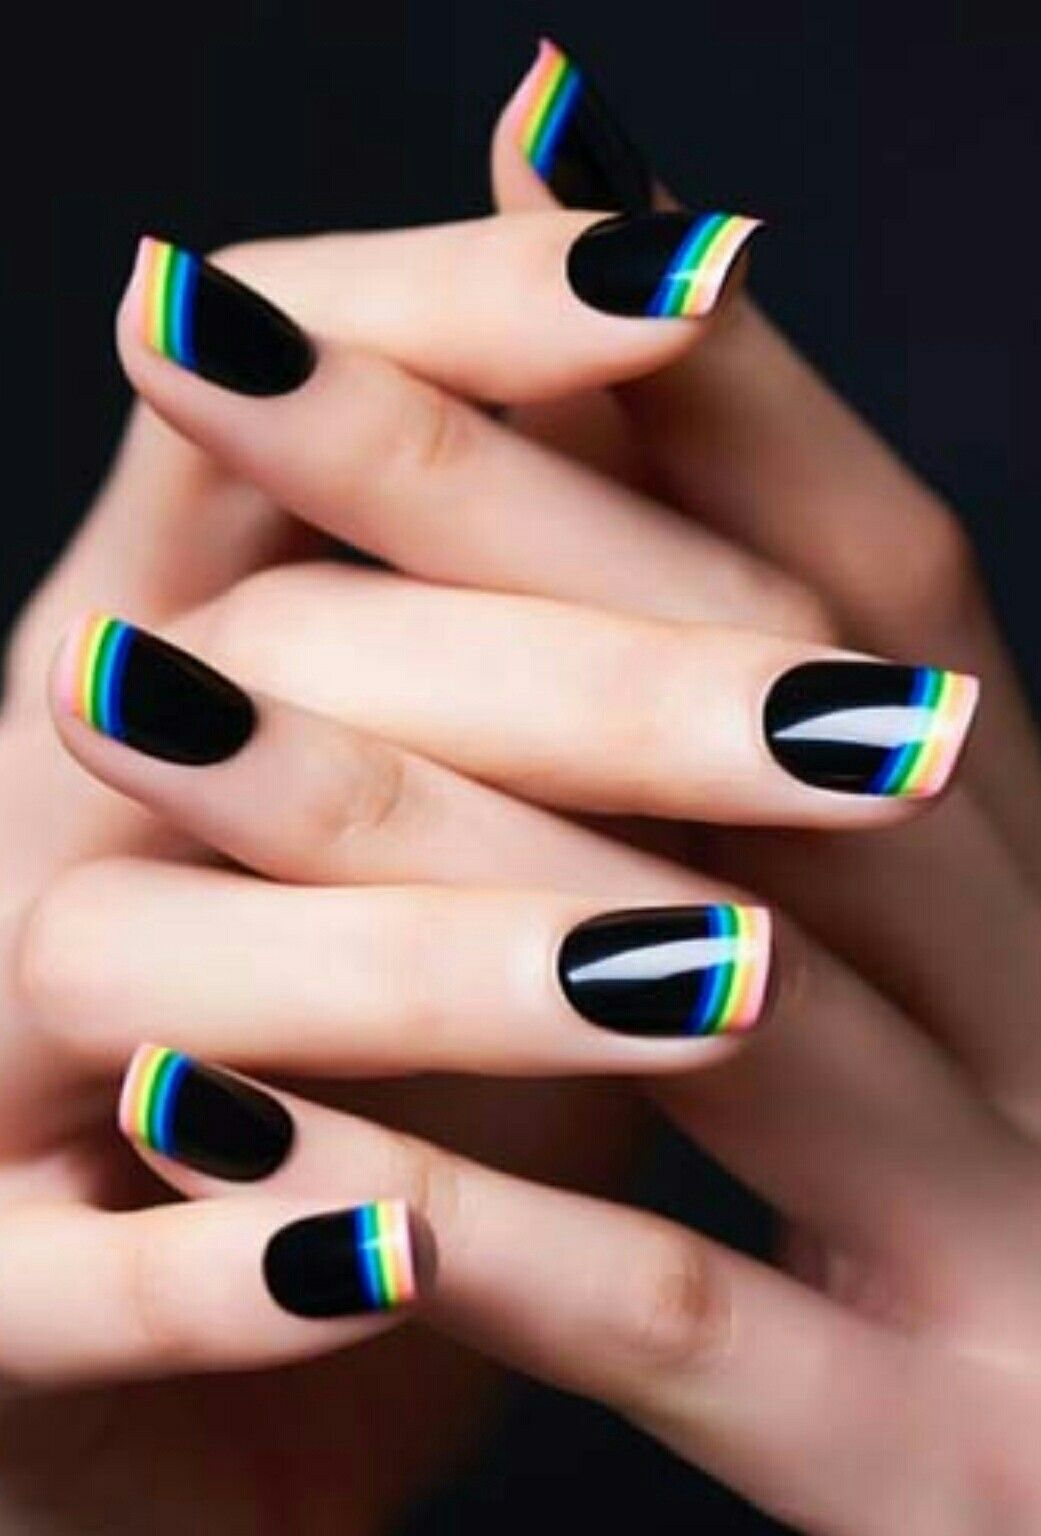 Black Nails with Rainbow French Tips  My Style Wish I Had These